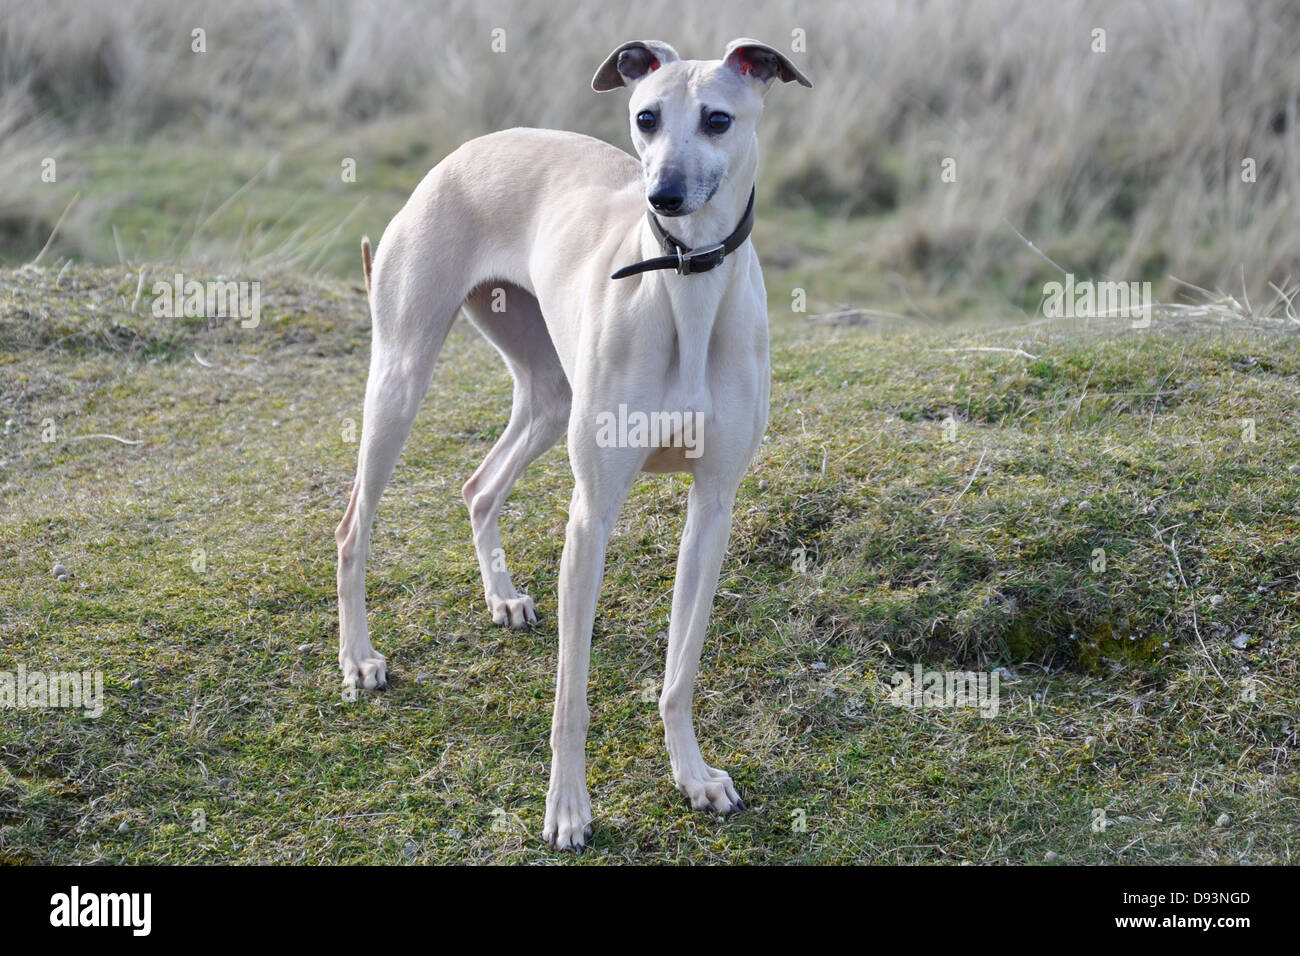 white whippet gun dog race dog standing still posed on a green grass hill UK - Stock Image